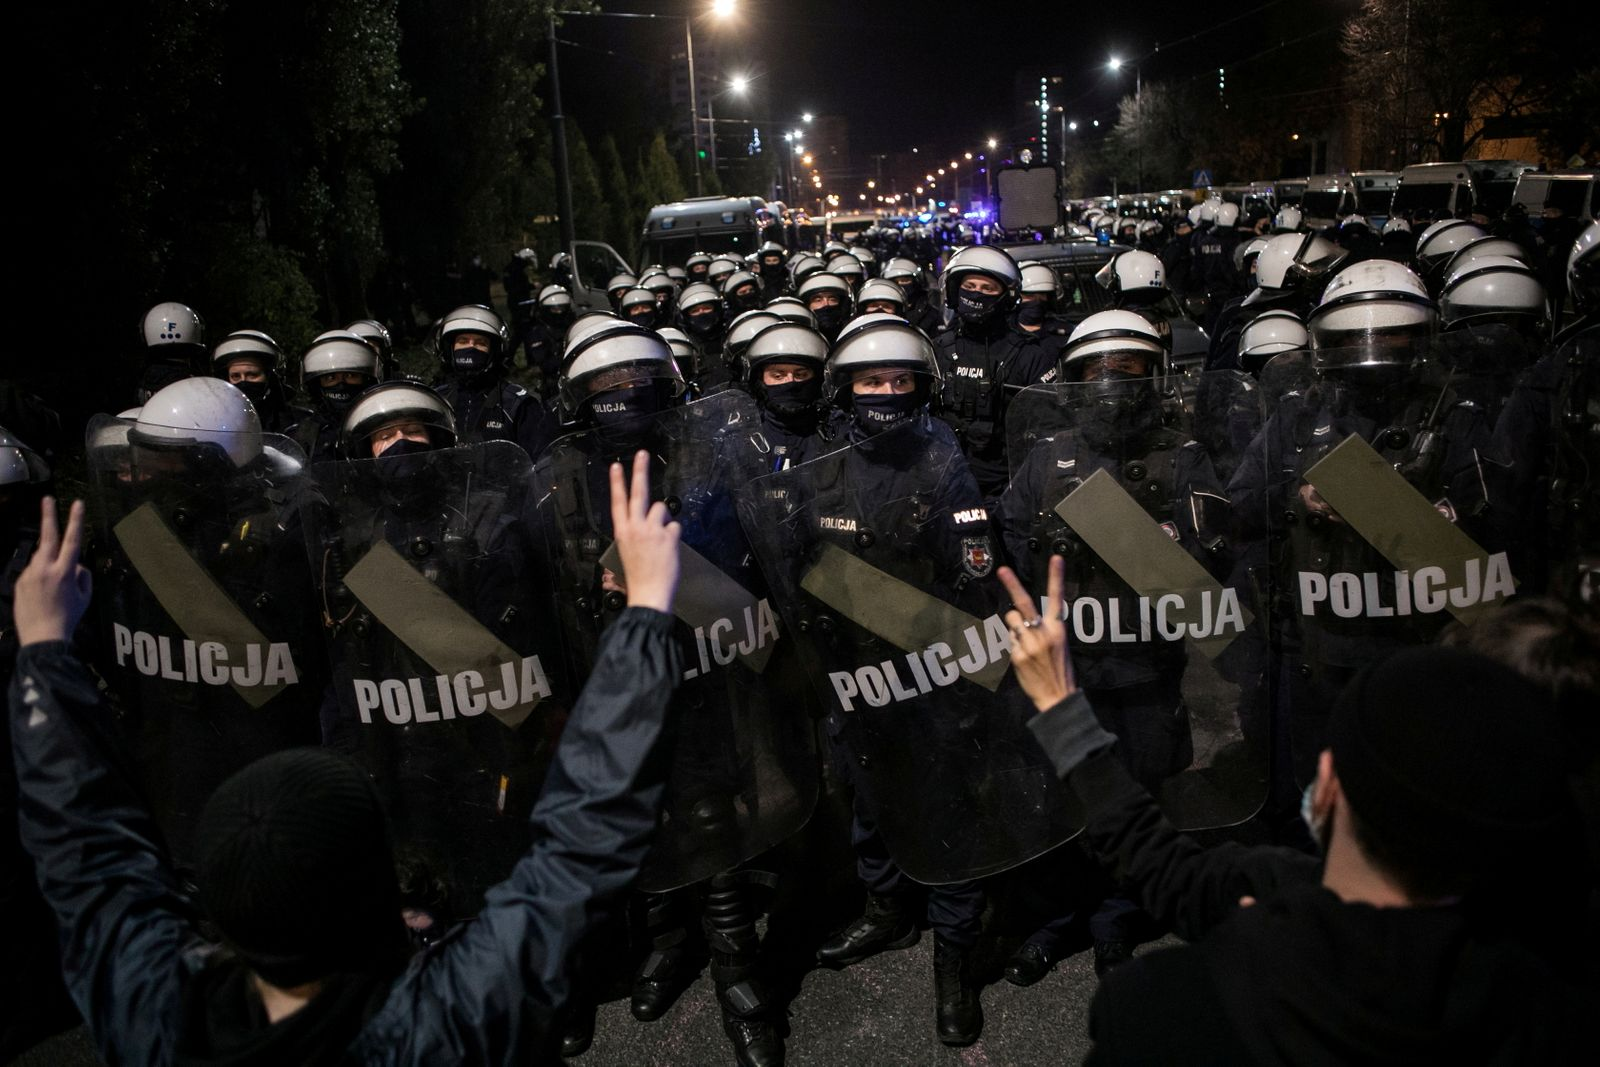 Police block a street near the house of Law and Justice leader Jaroslaw Kaczynski during a protest against imposing further restrictions on abortion law in Warsaw